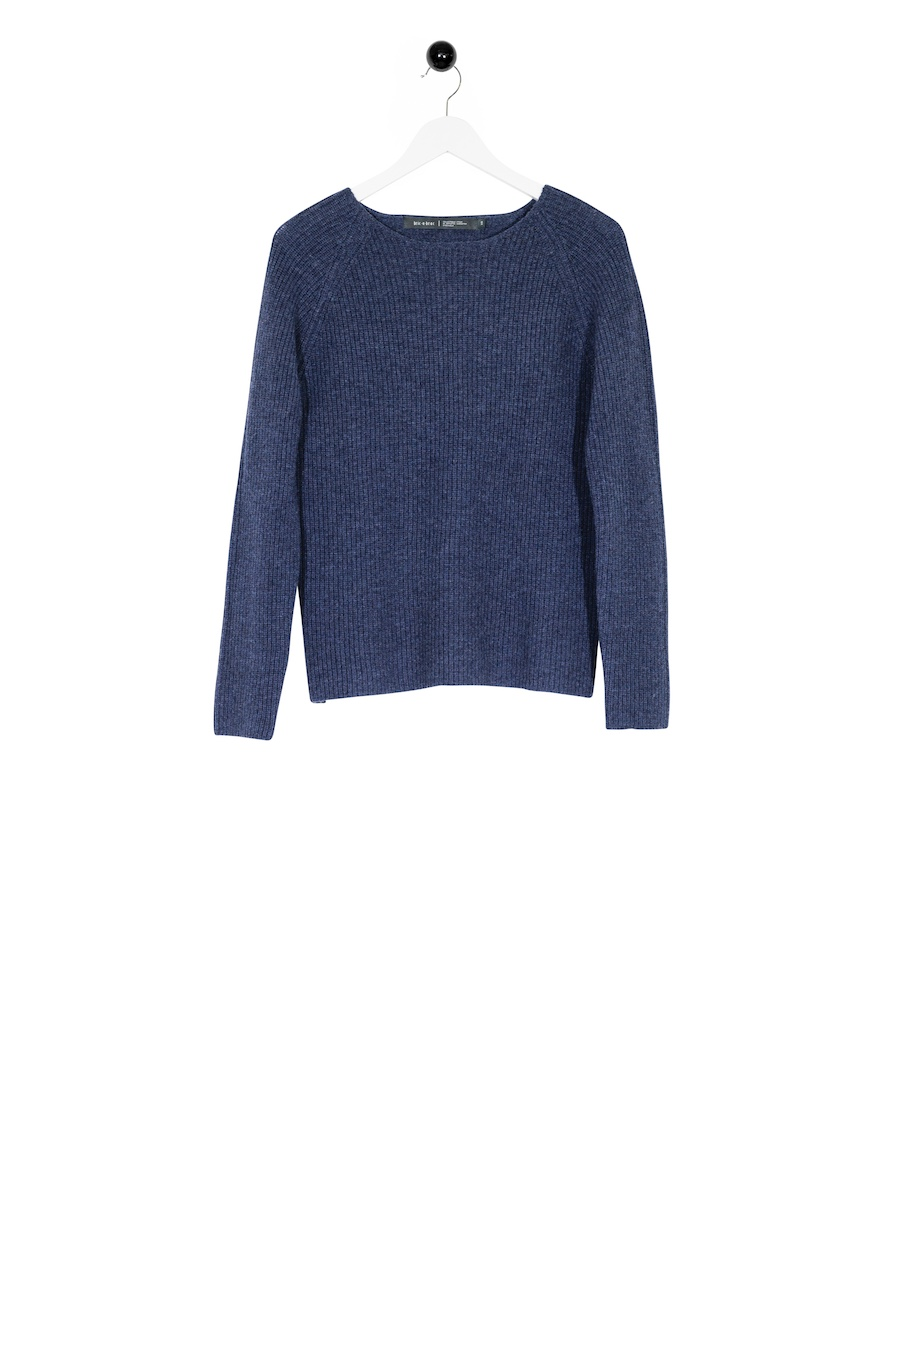 Hurva Sweater